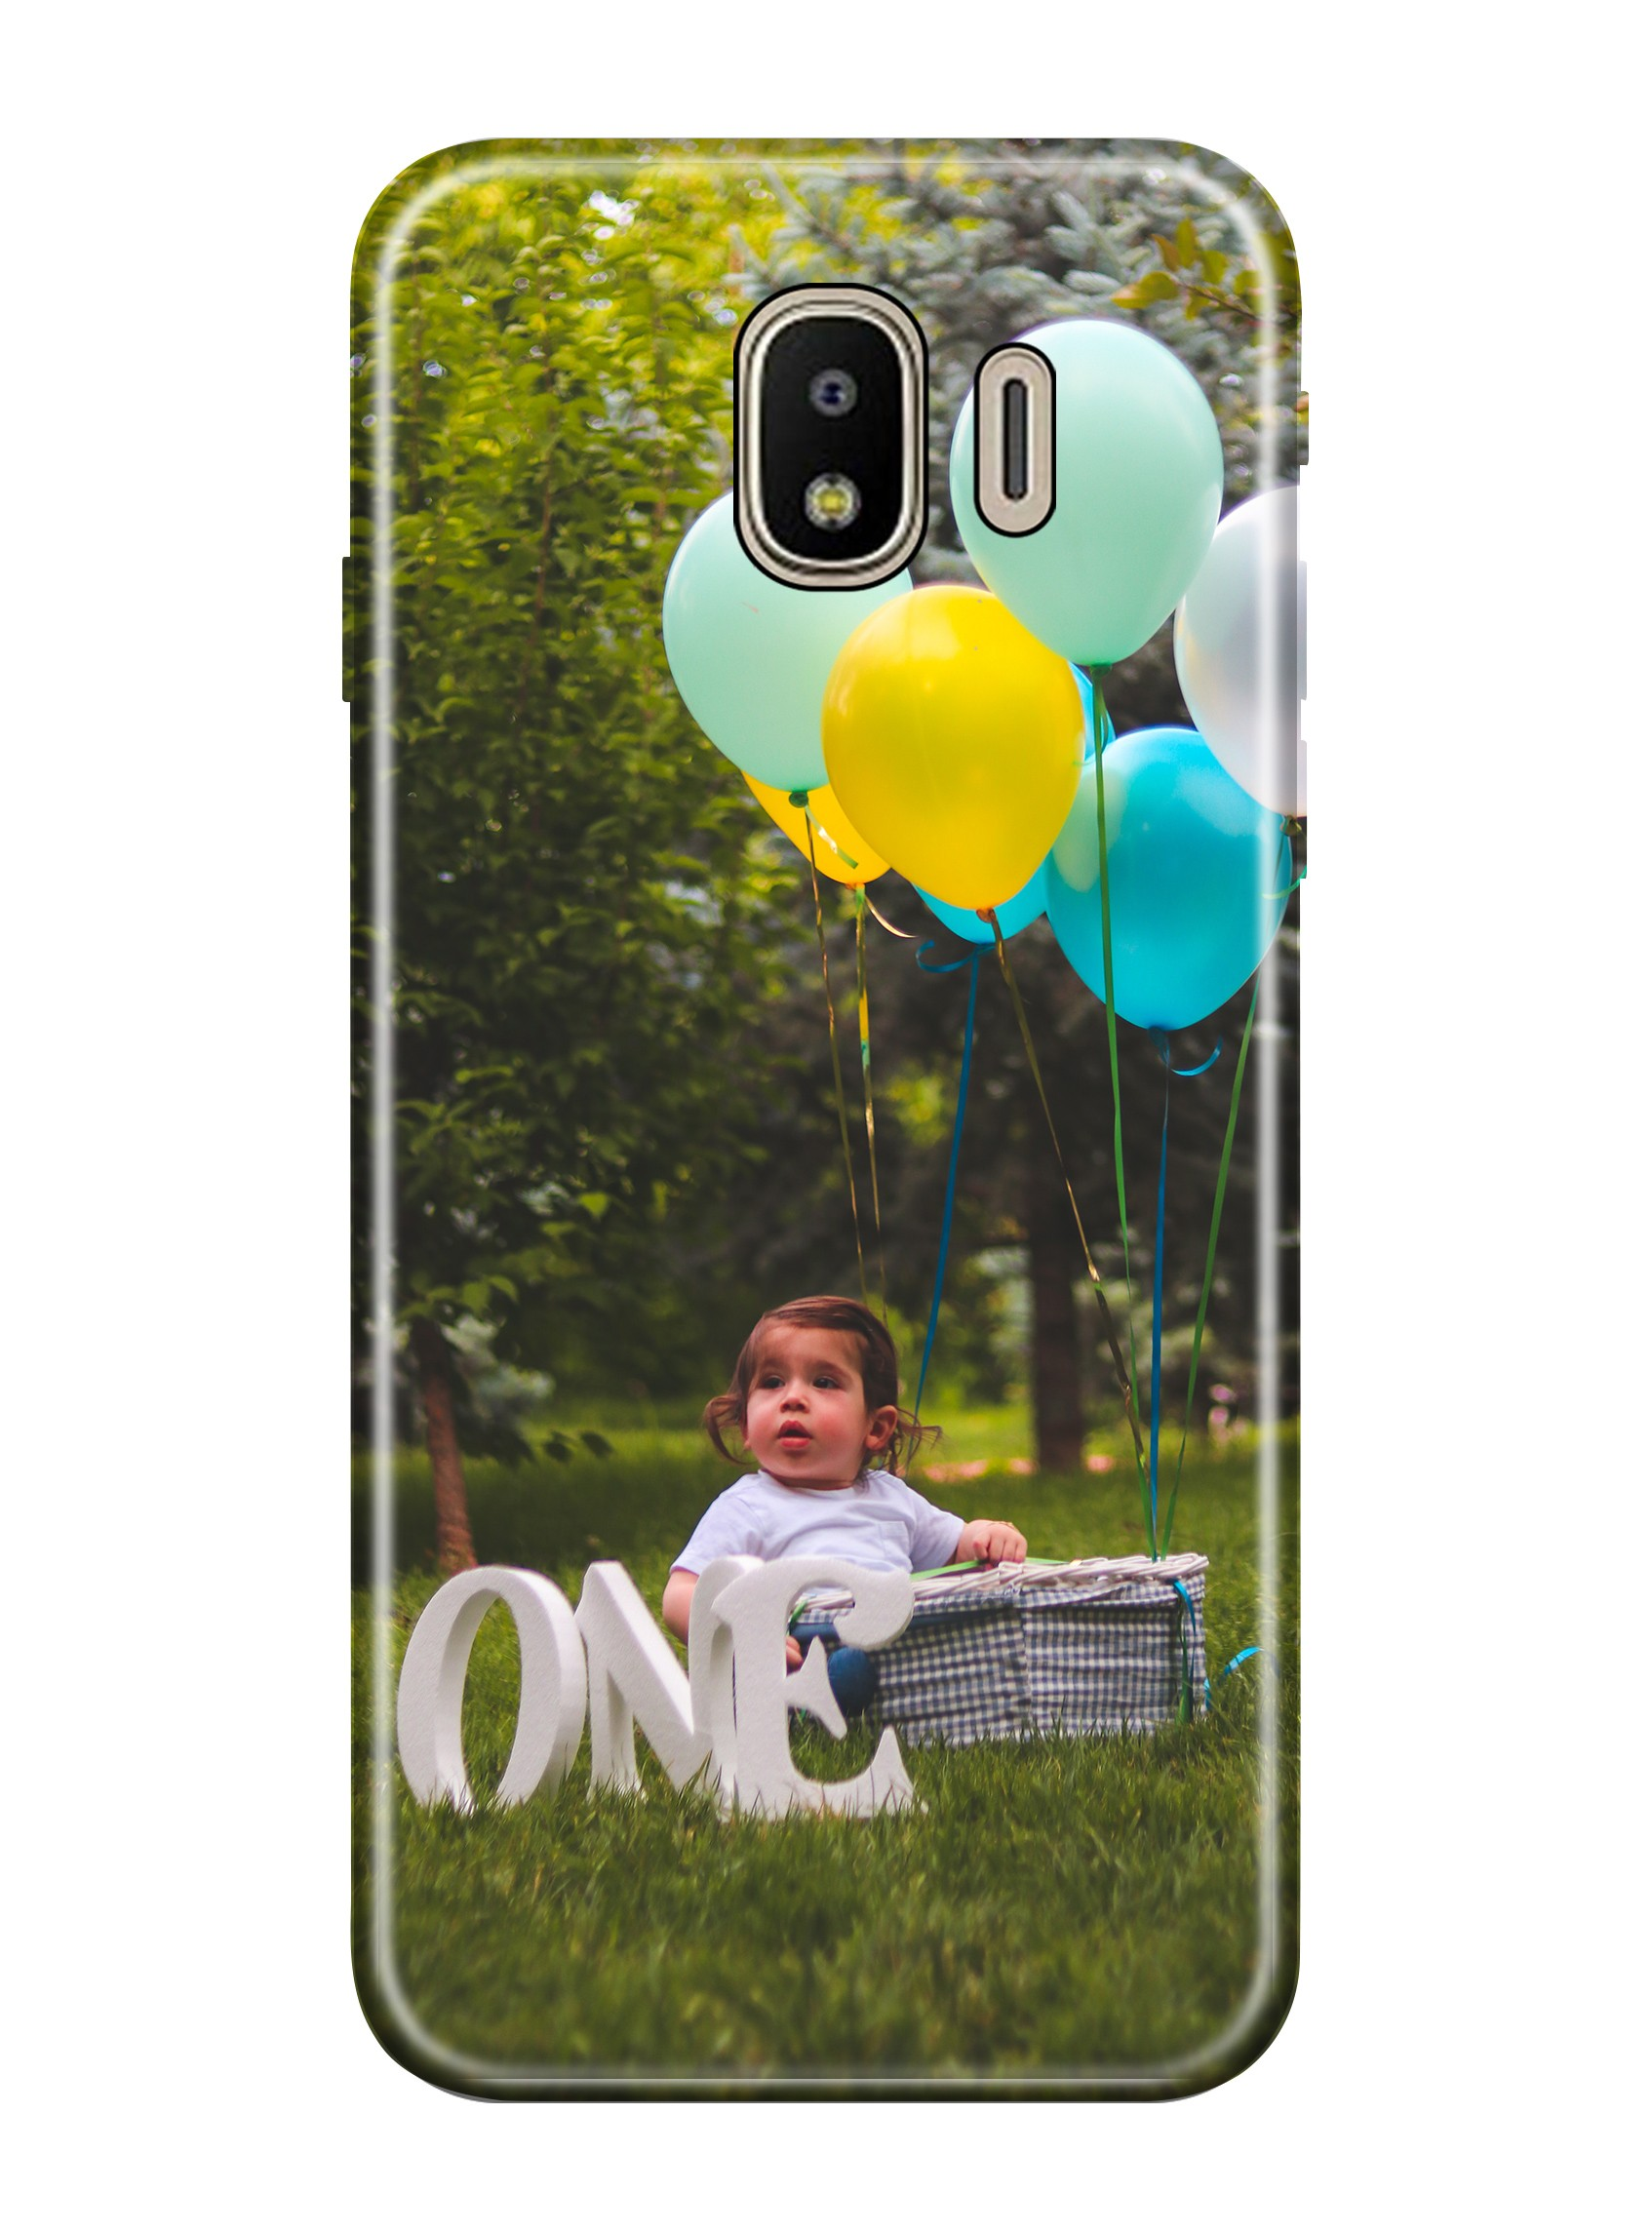 Samsung Galaxy J2 Pro (2018) Personalised Cases | Design My